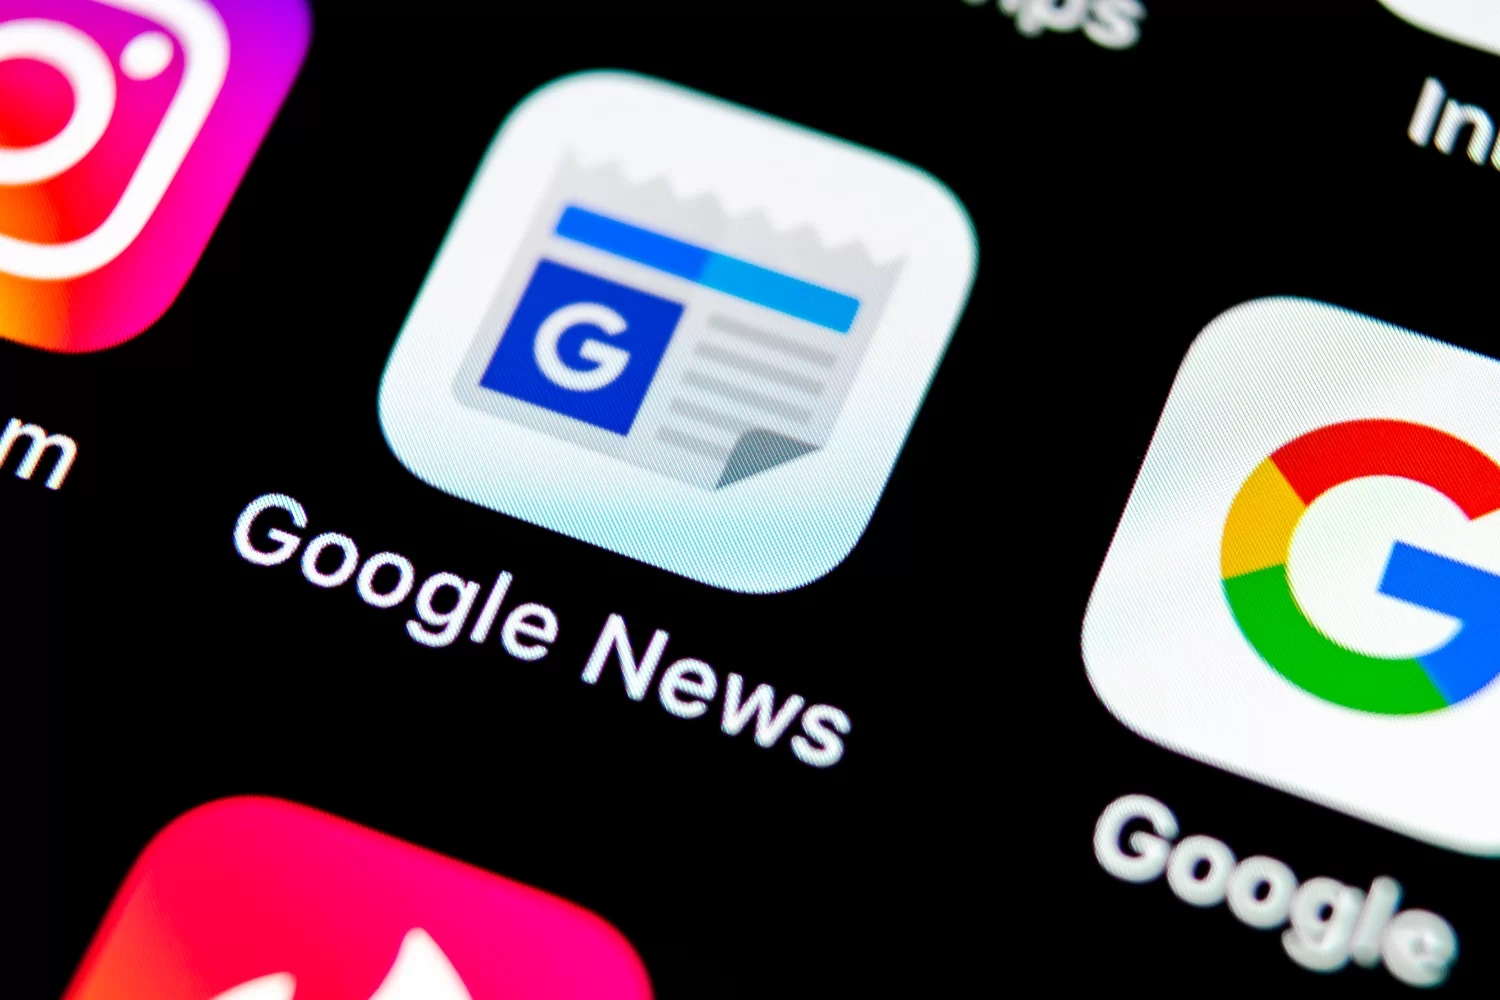 google news em app no ios